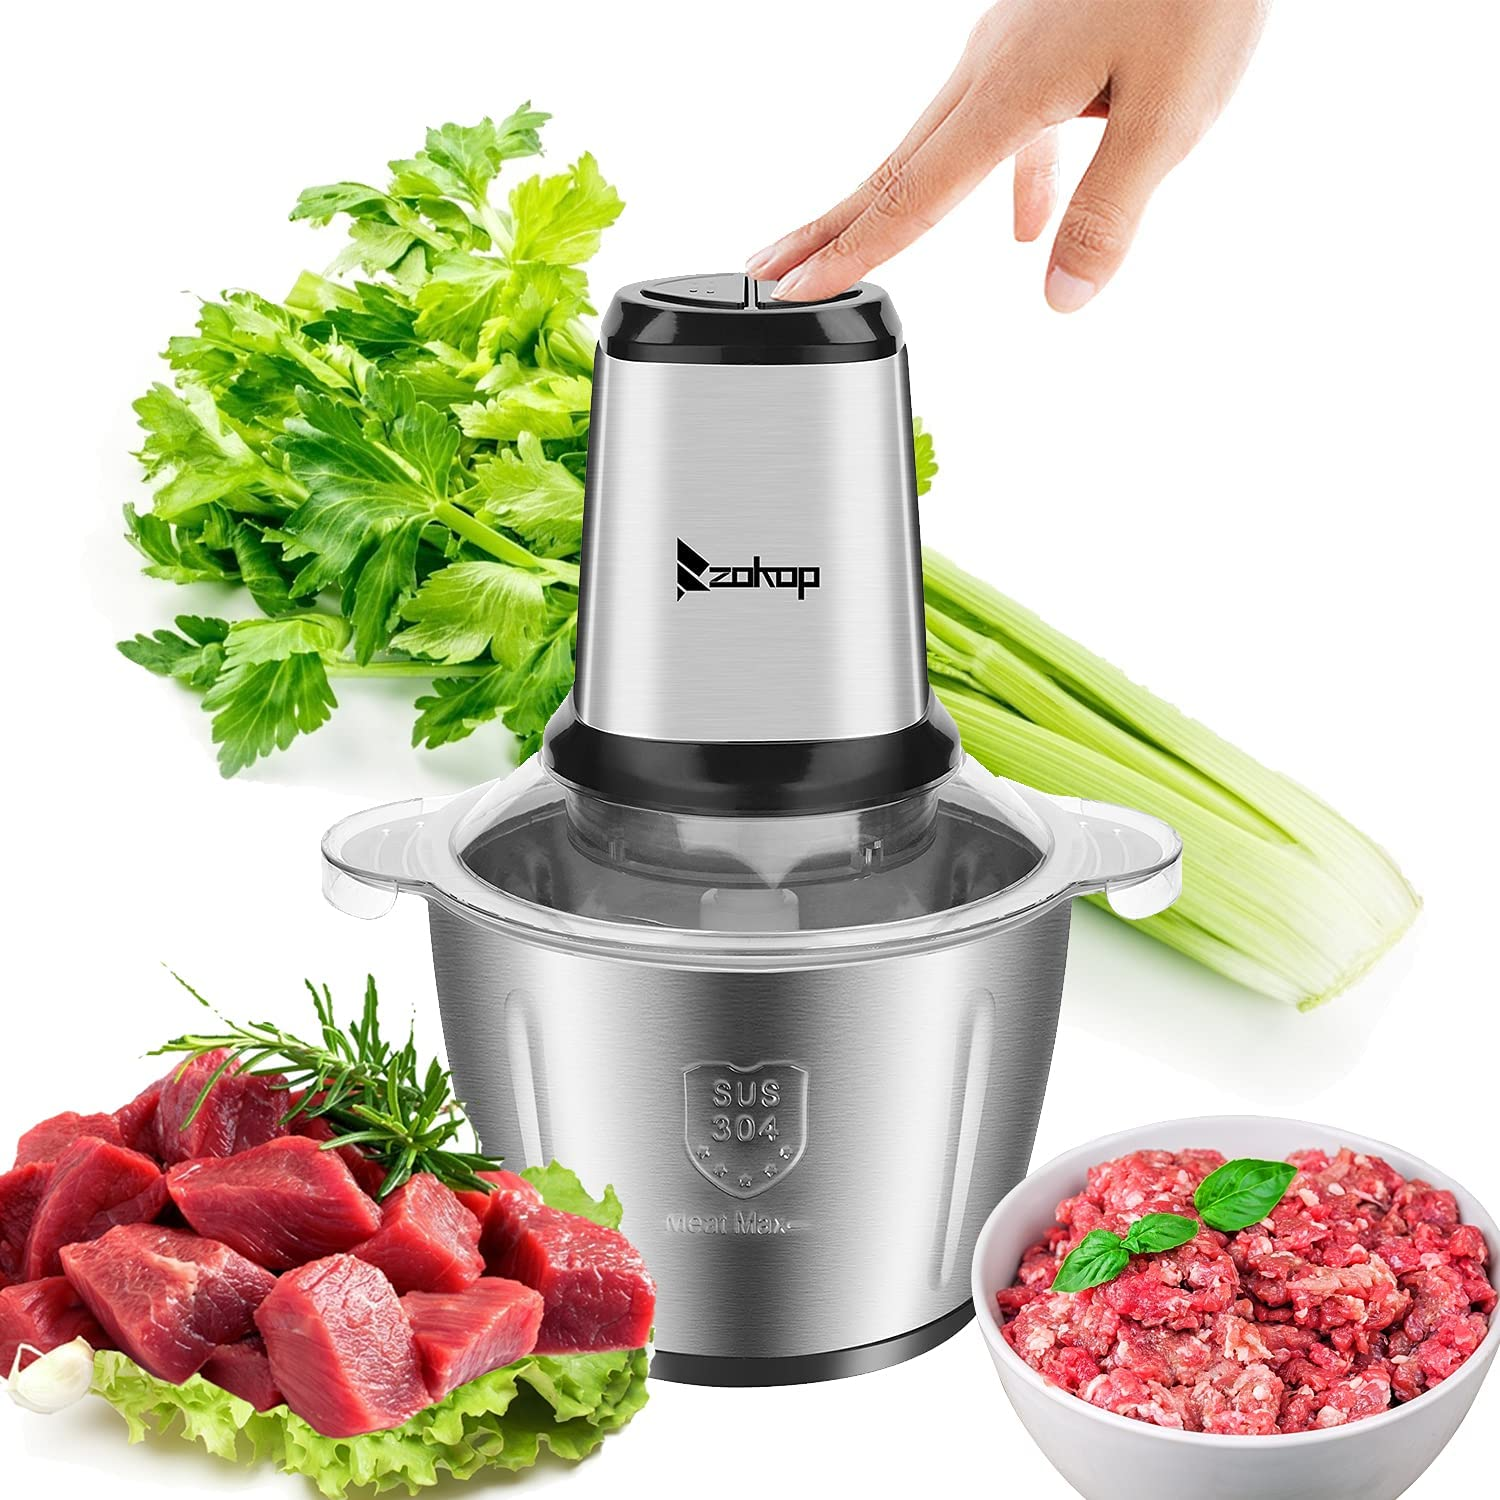 ZOKOP Special Campaign Electric Meat Grinder 2.8L S Max 63% OFF Capacity Professional Large